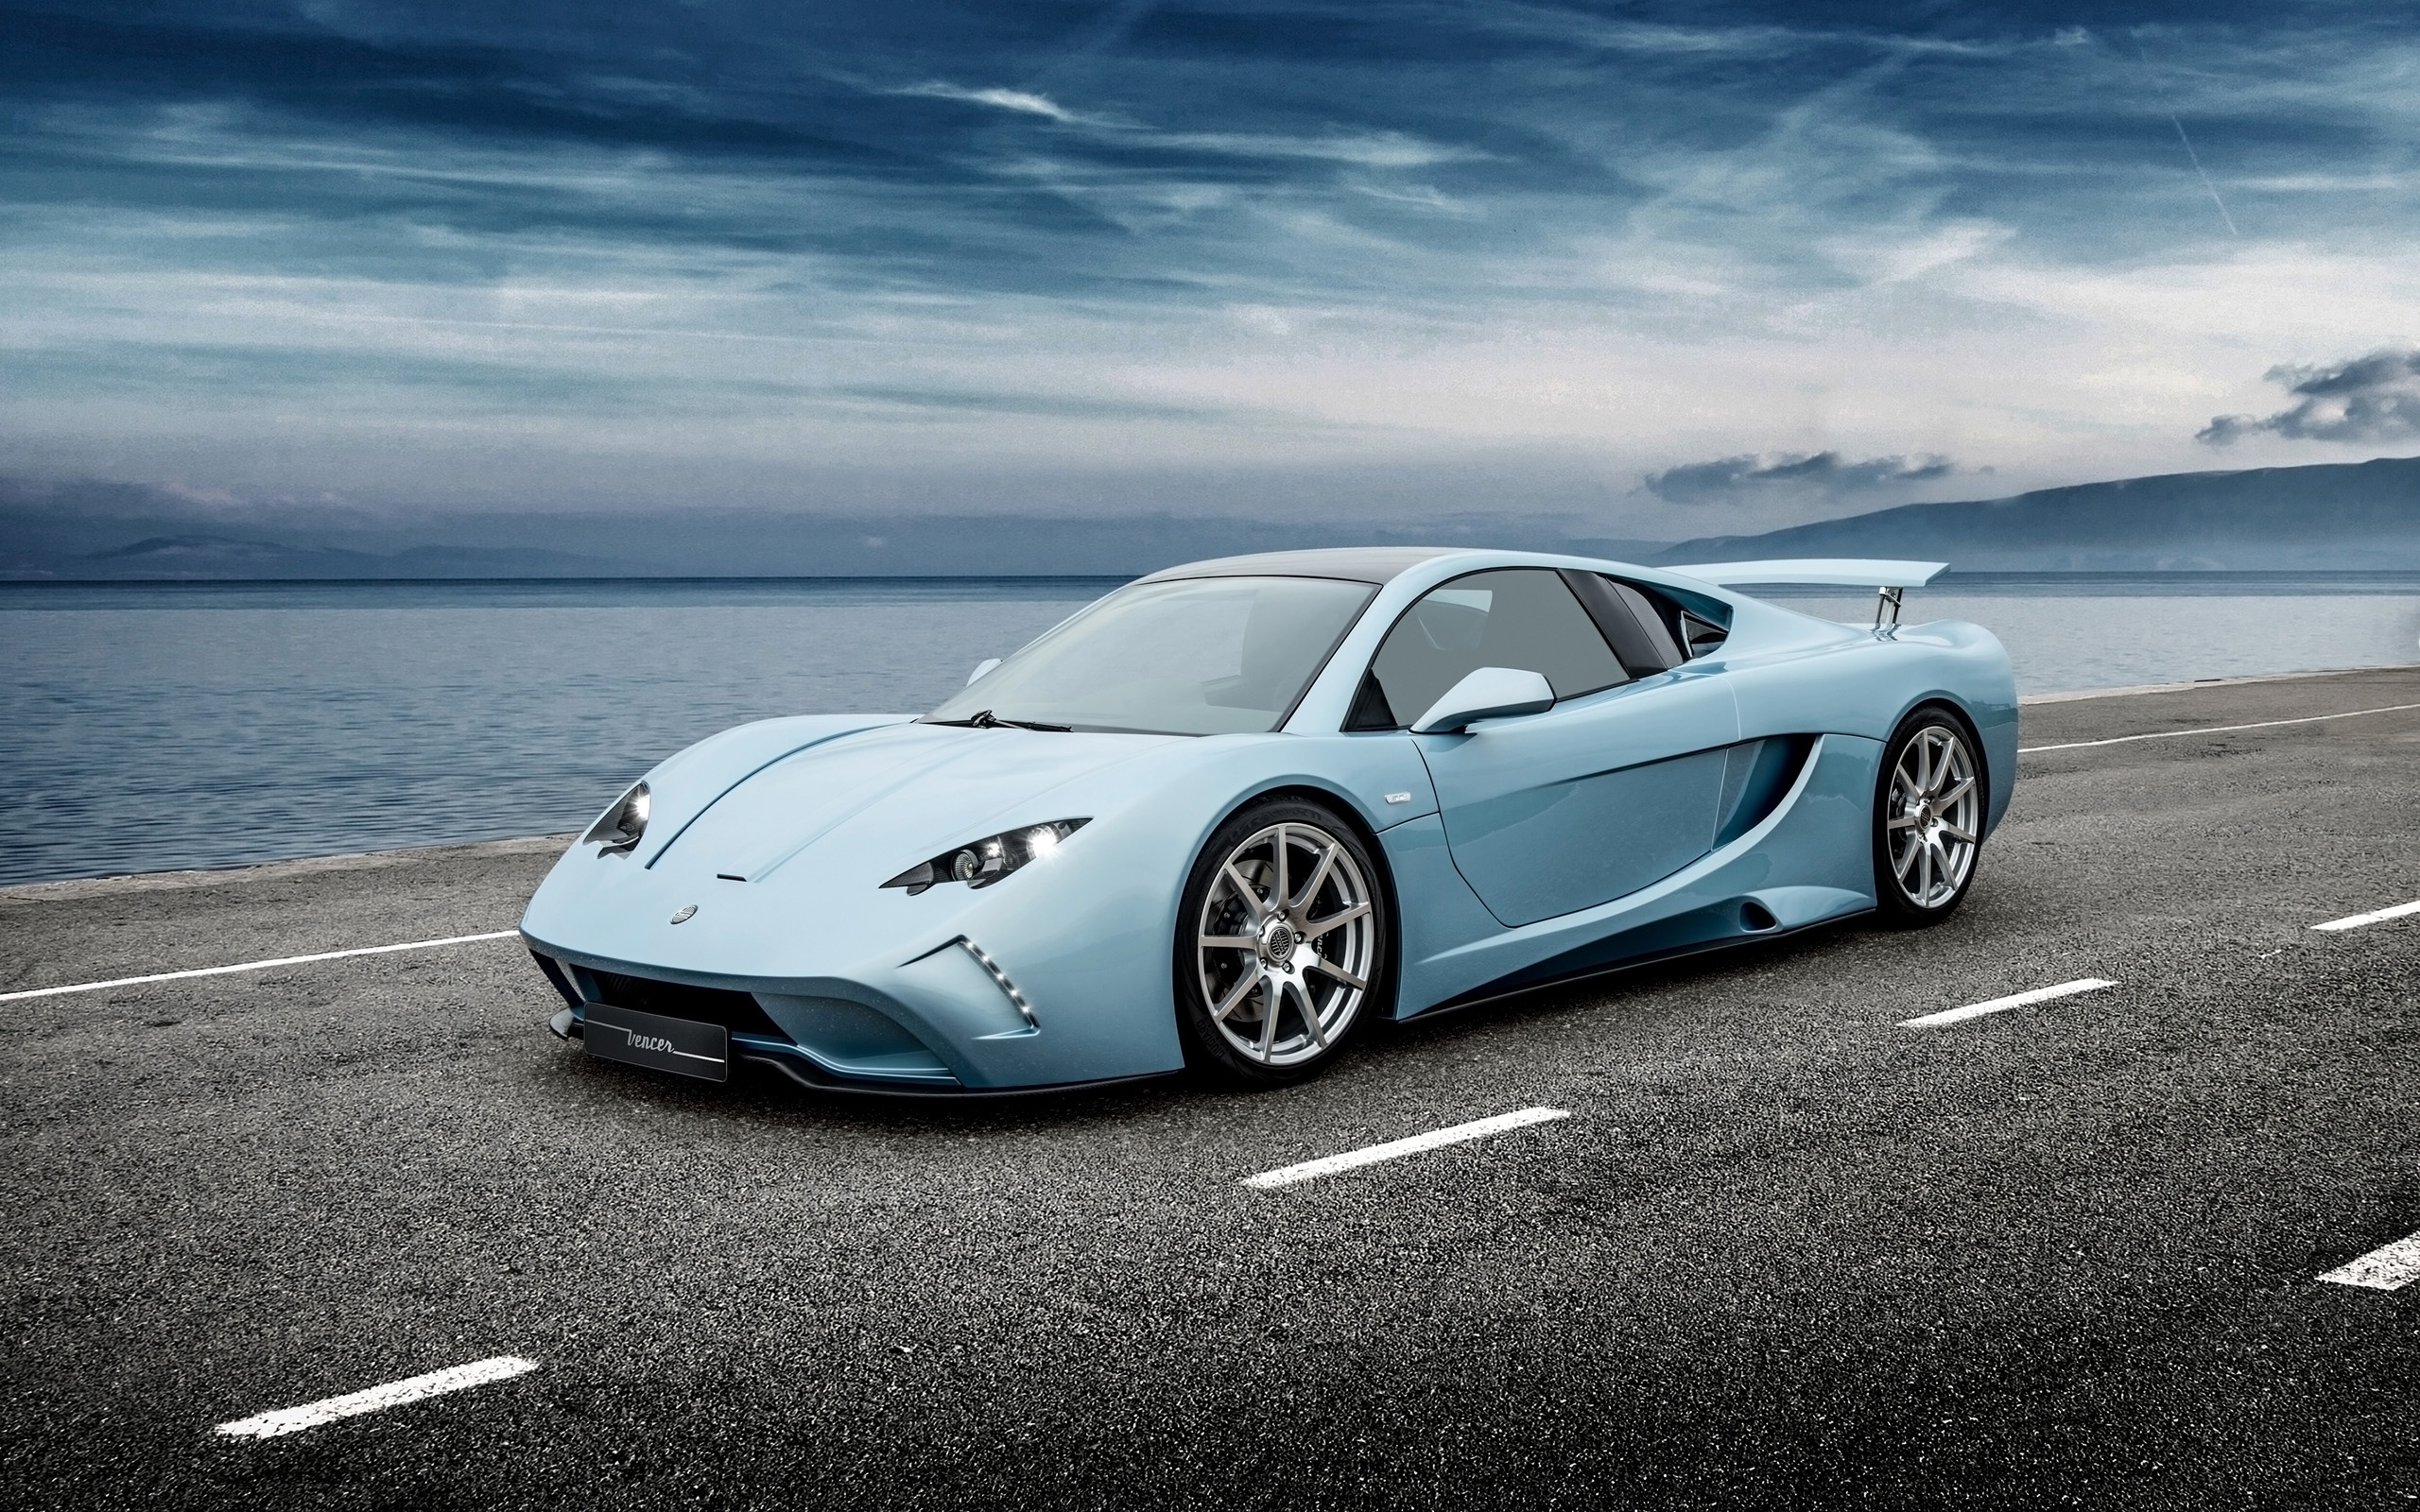 Vencer Sarthe 2015 Wallpaper HD Car Wallpapers 2560x1600